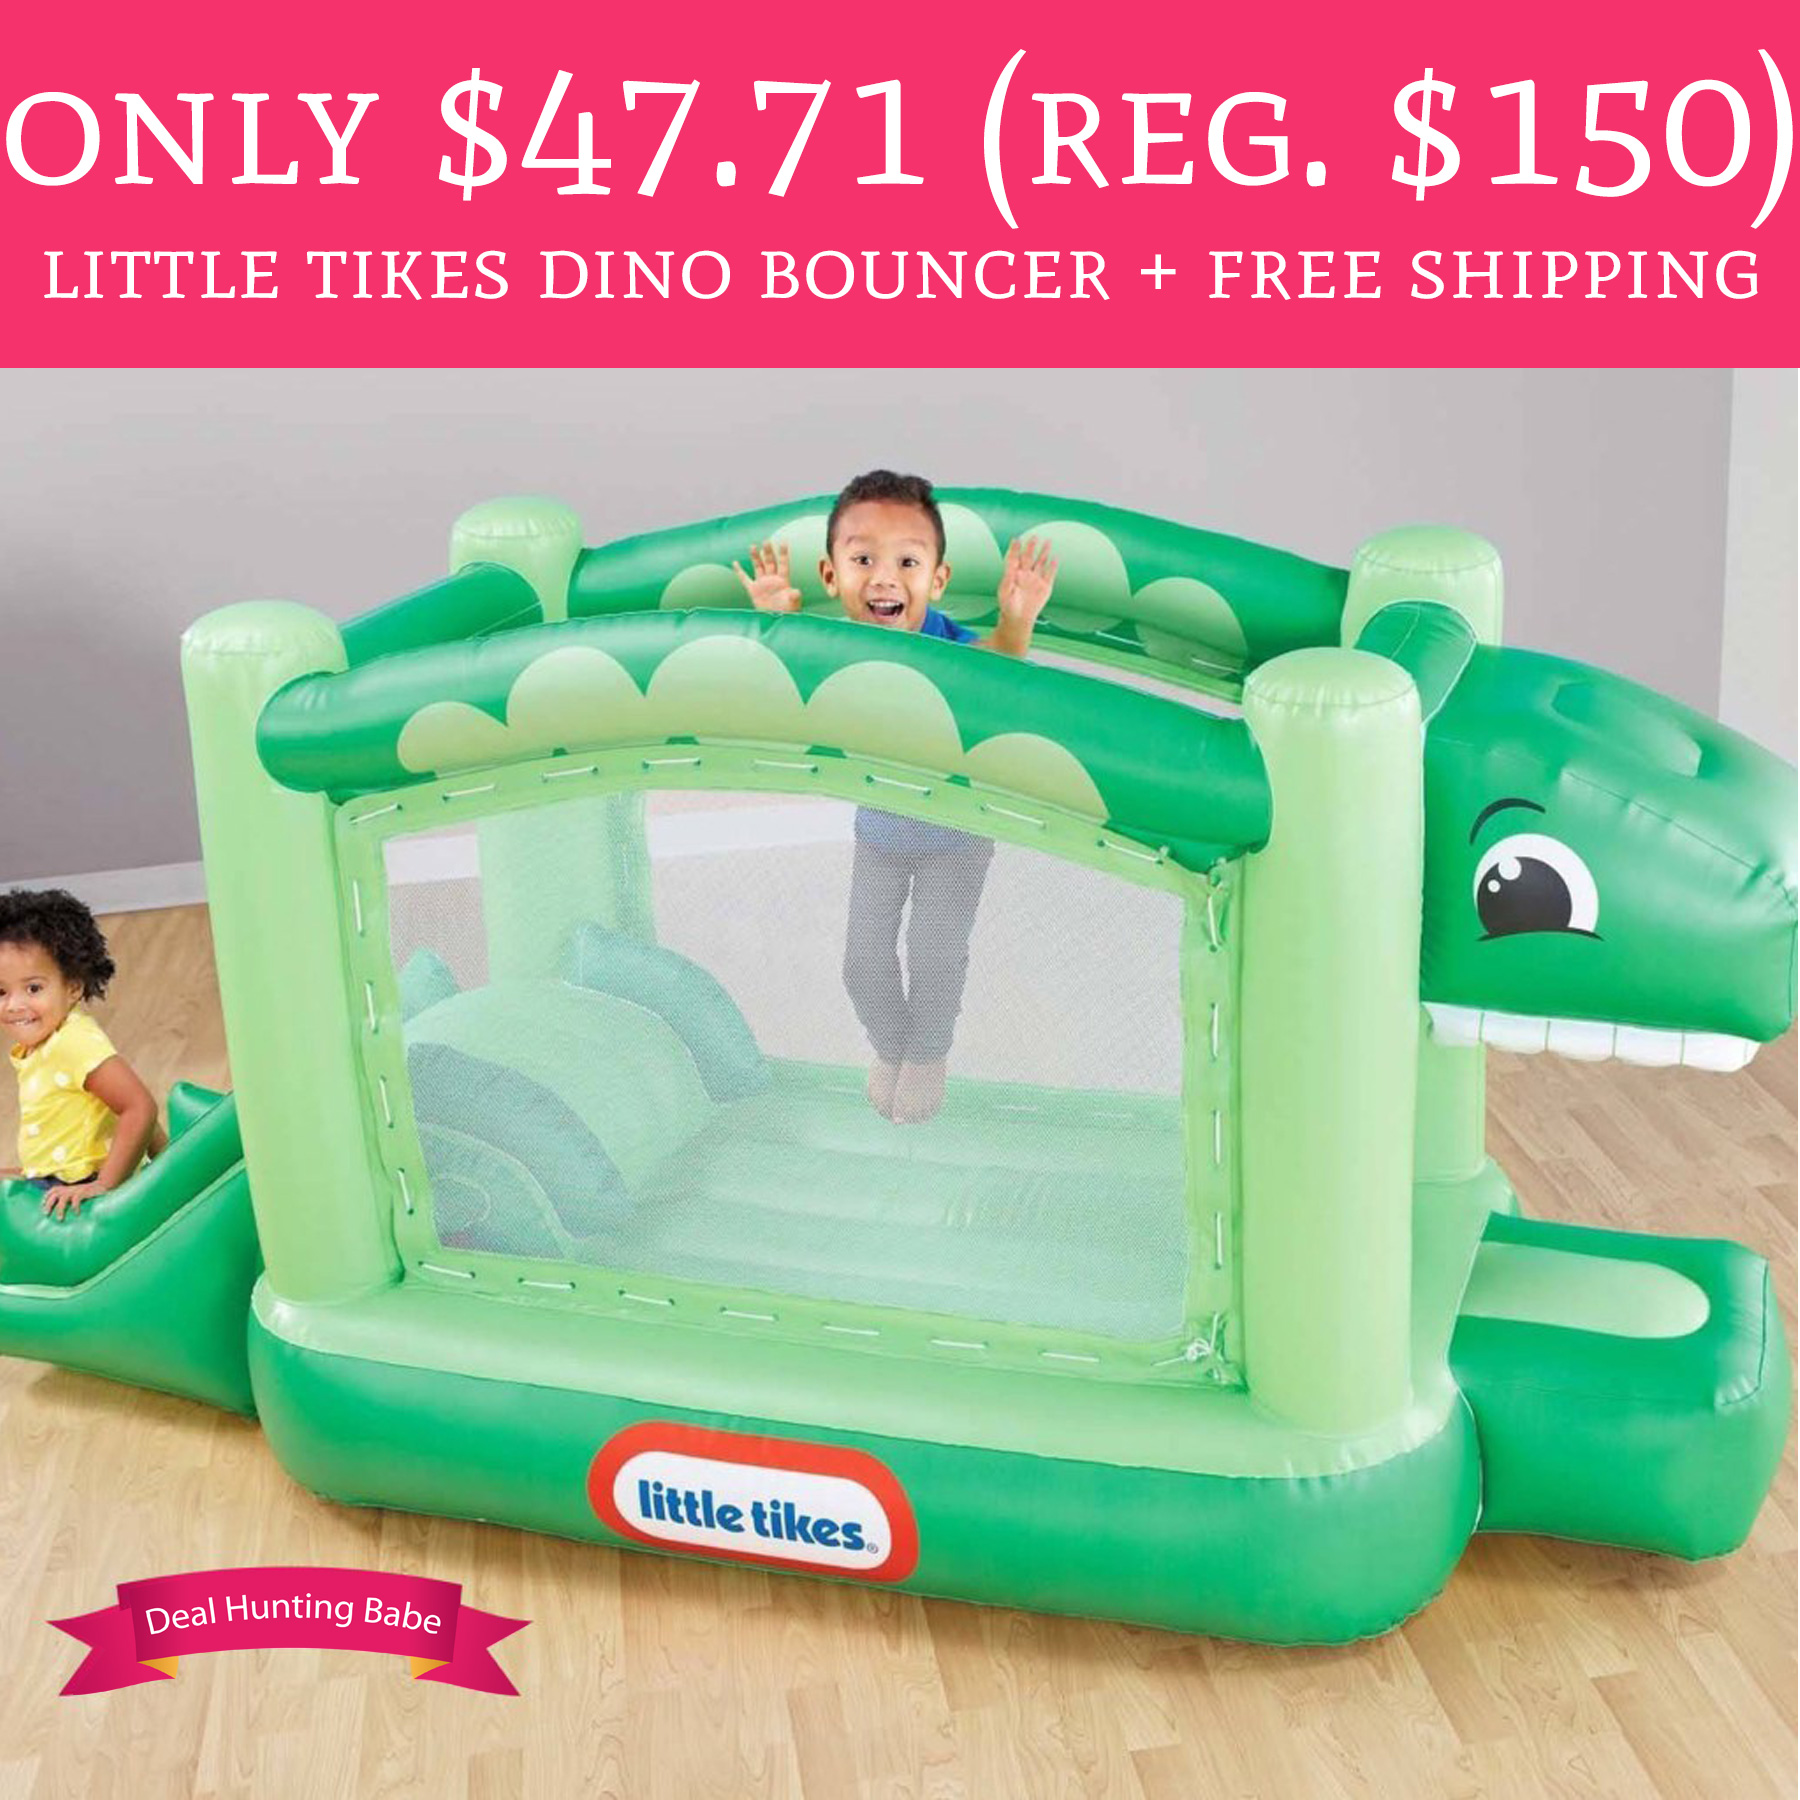 $ Little Tikes First Mini Lalaloopsy Bundle Get the toys you want for your young ones when you shop the offers from Little Tikes. Visit Little Tikes website now and get the popular Little Tikes First Mini Lalaloopsy(TM) Bundle for $, originally $